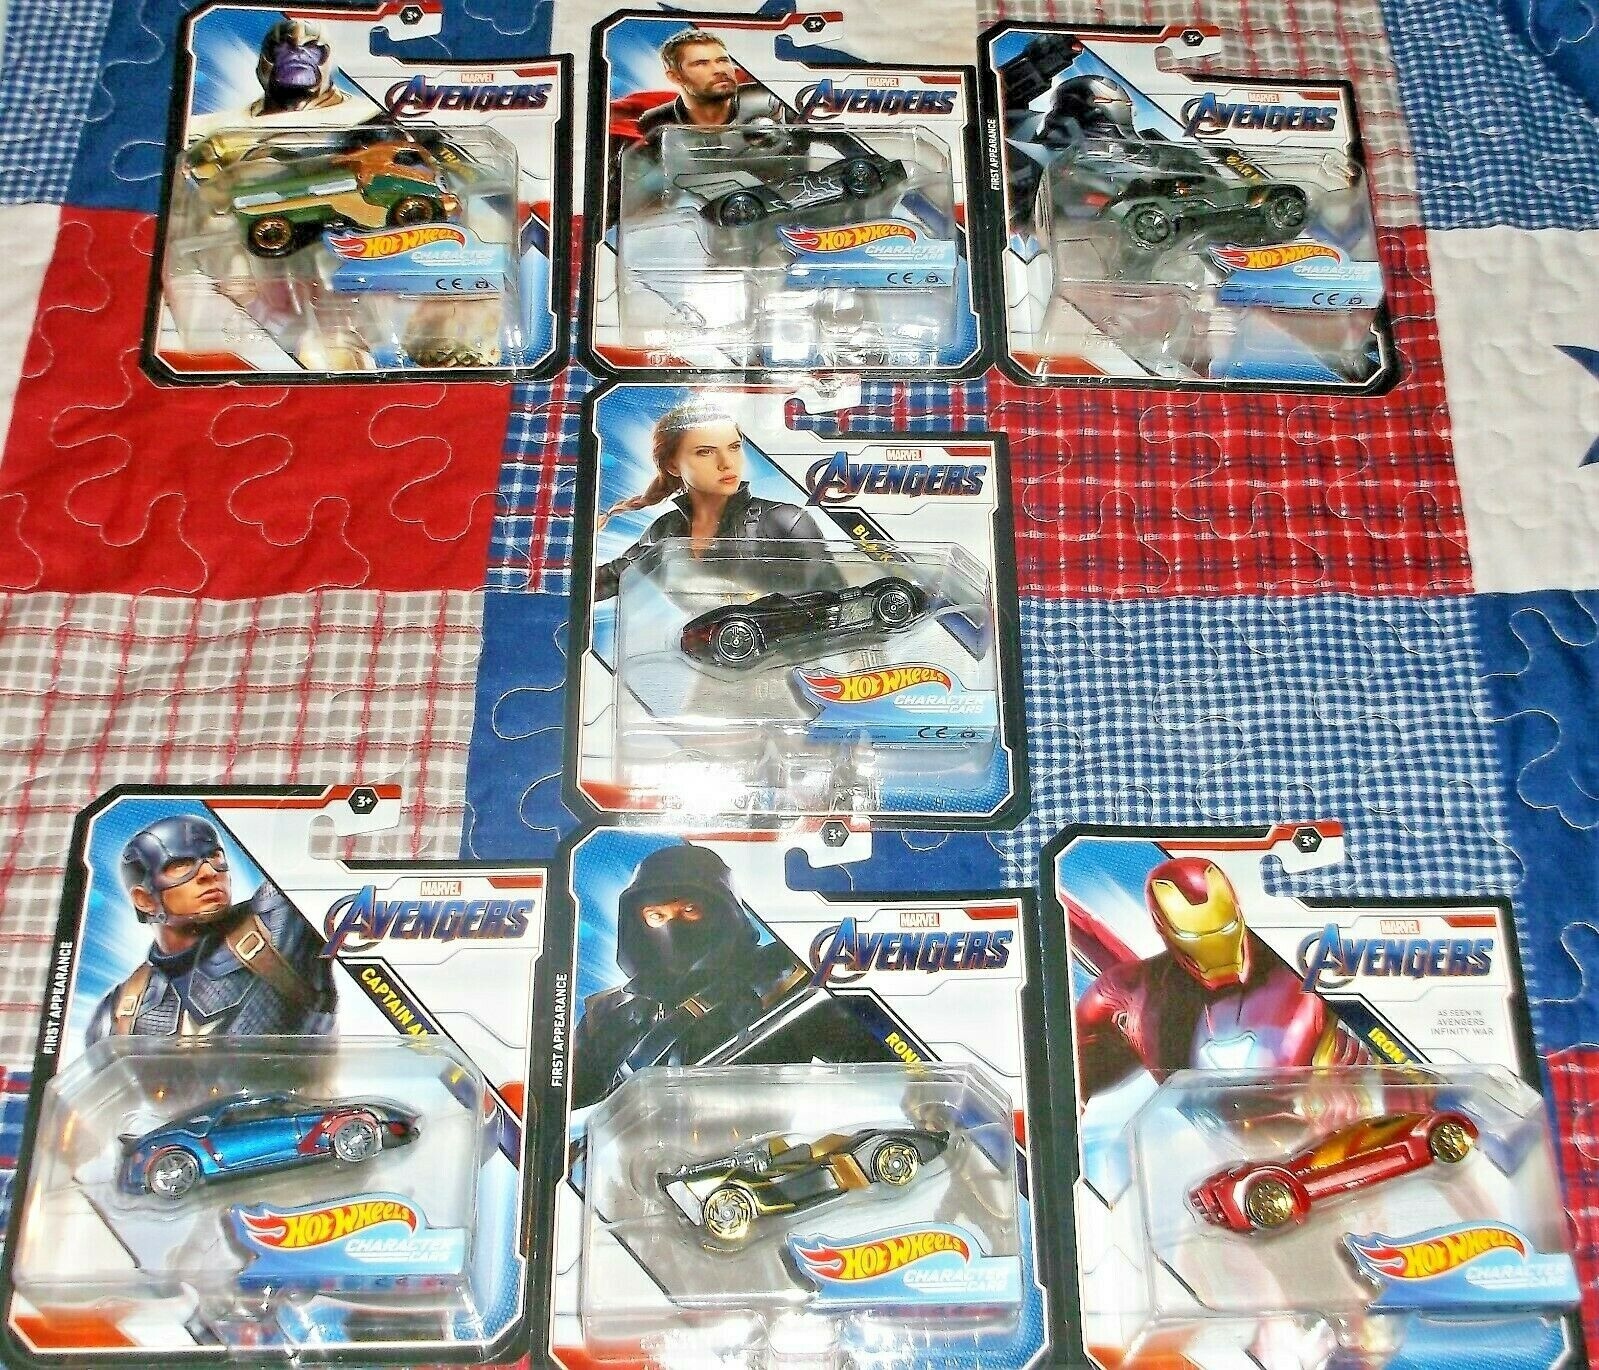 2019 Hot Wheels Marvel Avengers End Game Character Cars 7 Car Complete Set Dieca